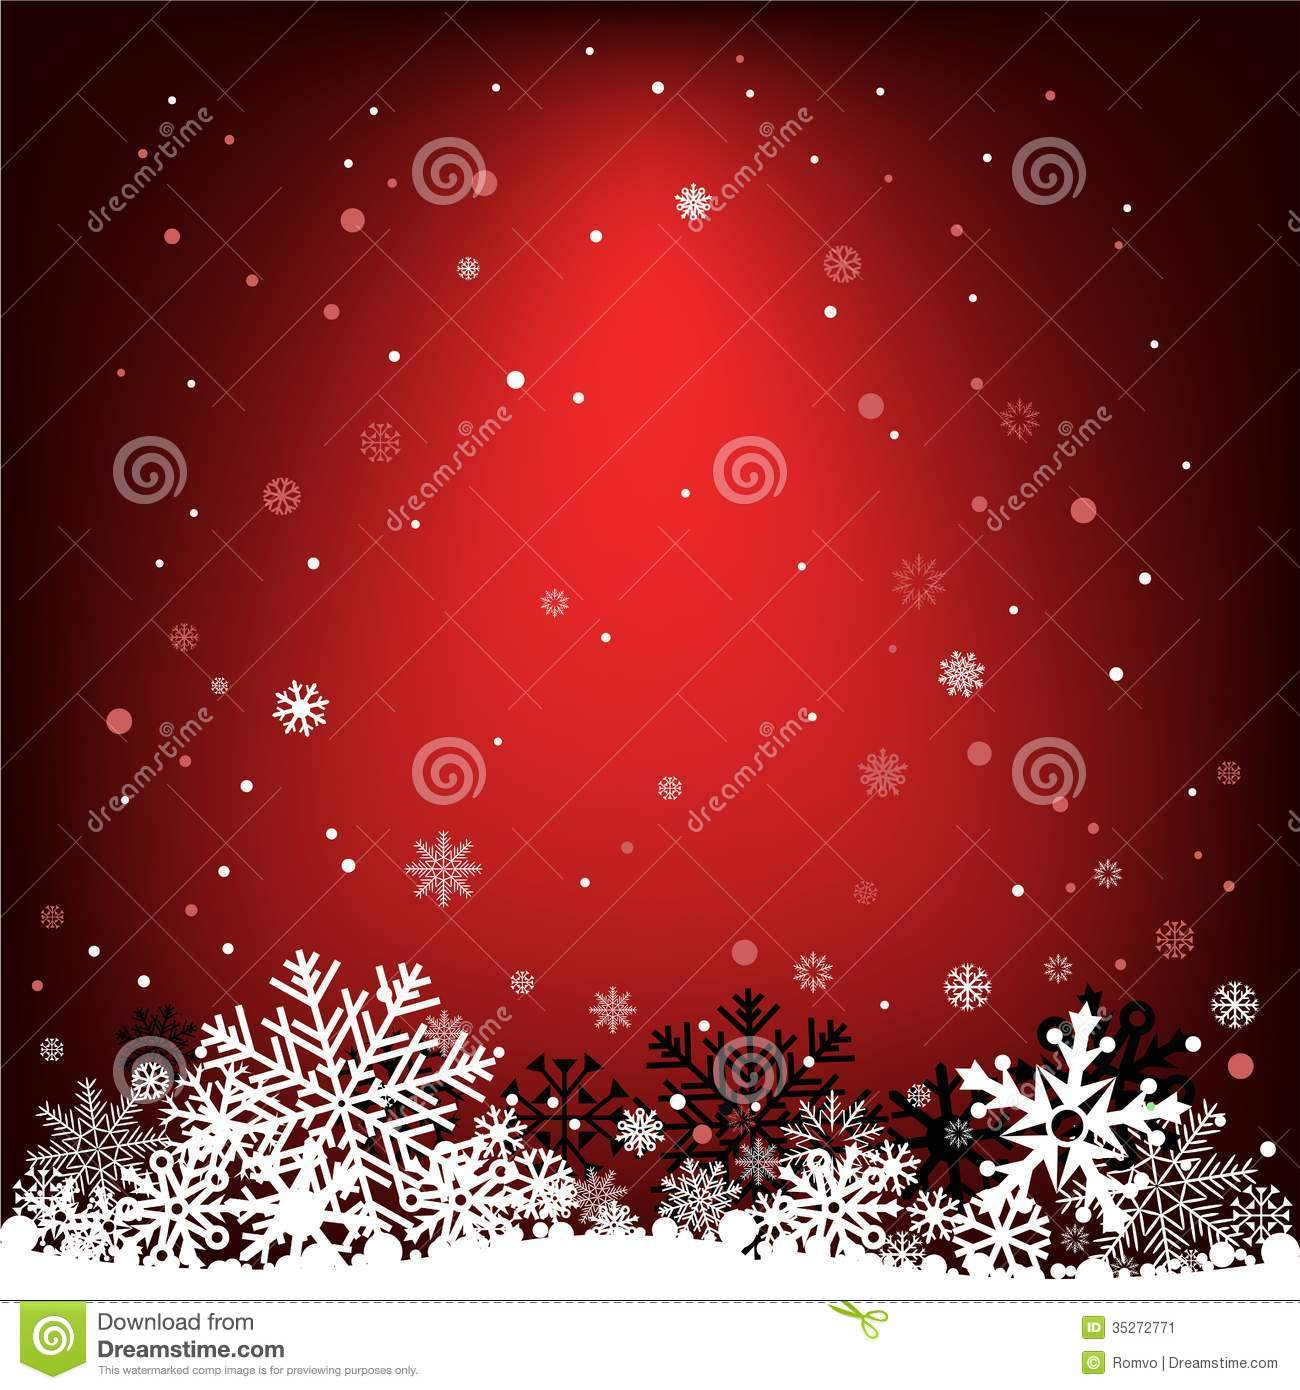 Free Animated Snow Falling Wallpaper Dark Red Snow Mesh Background Stock Vector Illustration